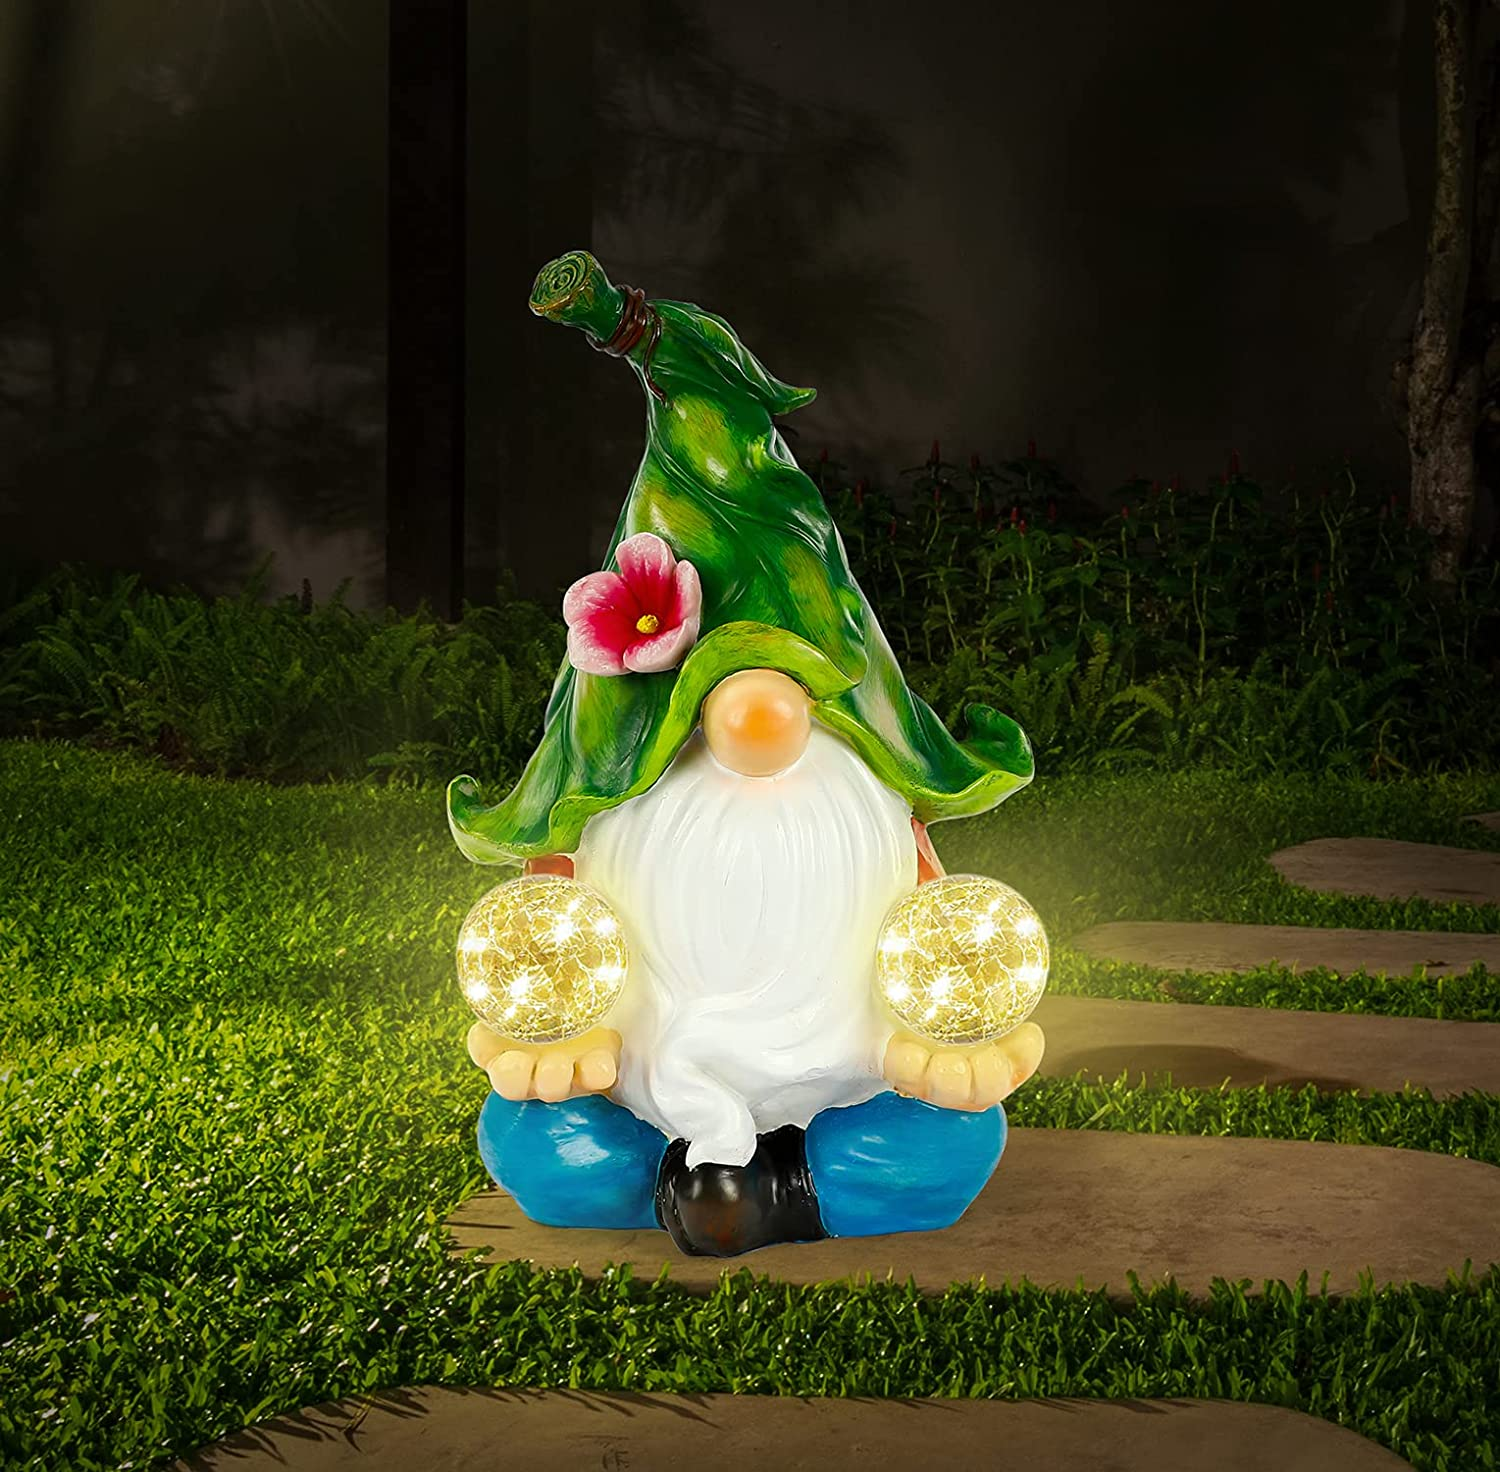 WOGOON Gnomes Outstanding Max 41% OFF Garden Art Outdoor Meditating Large G Decorations